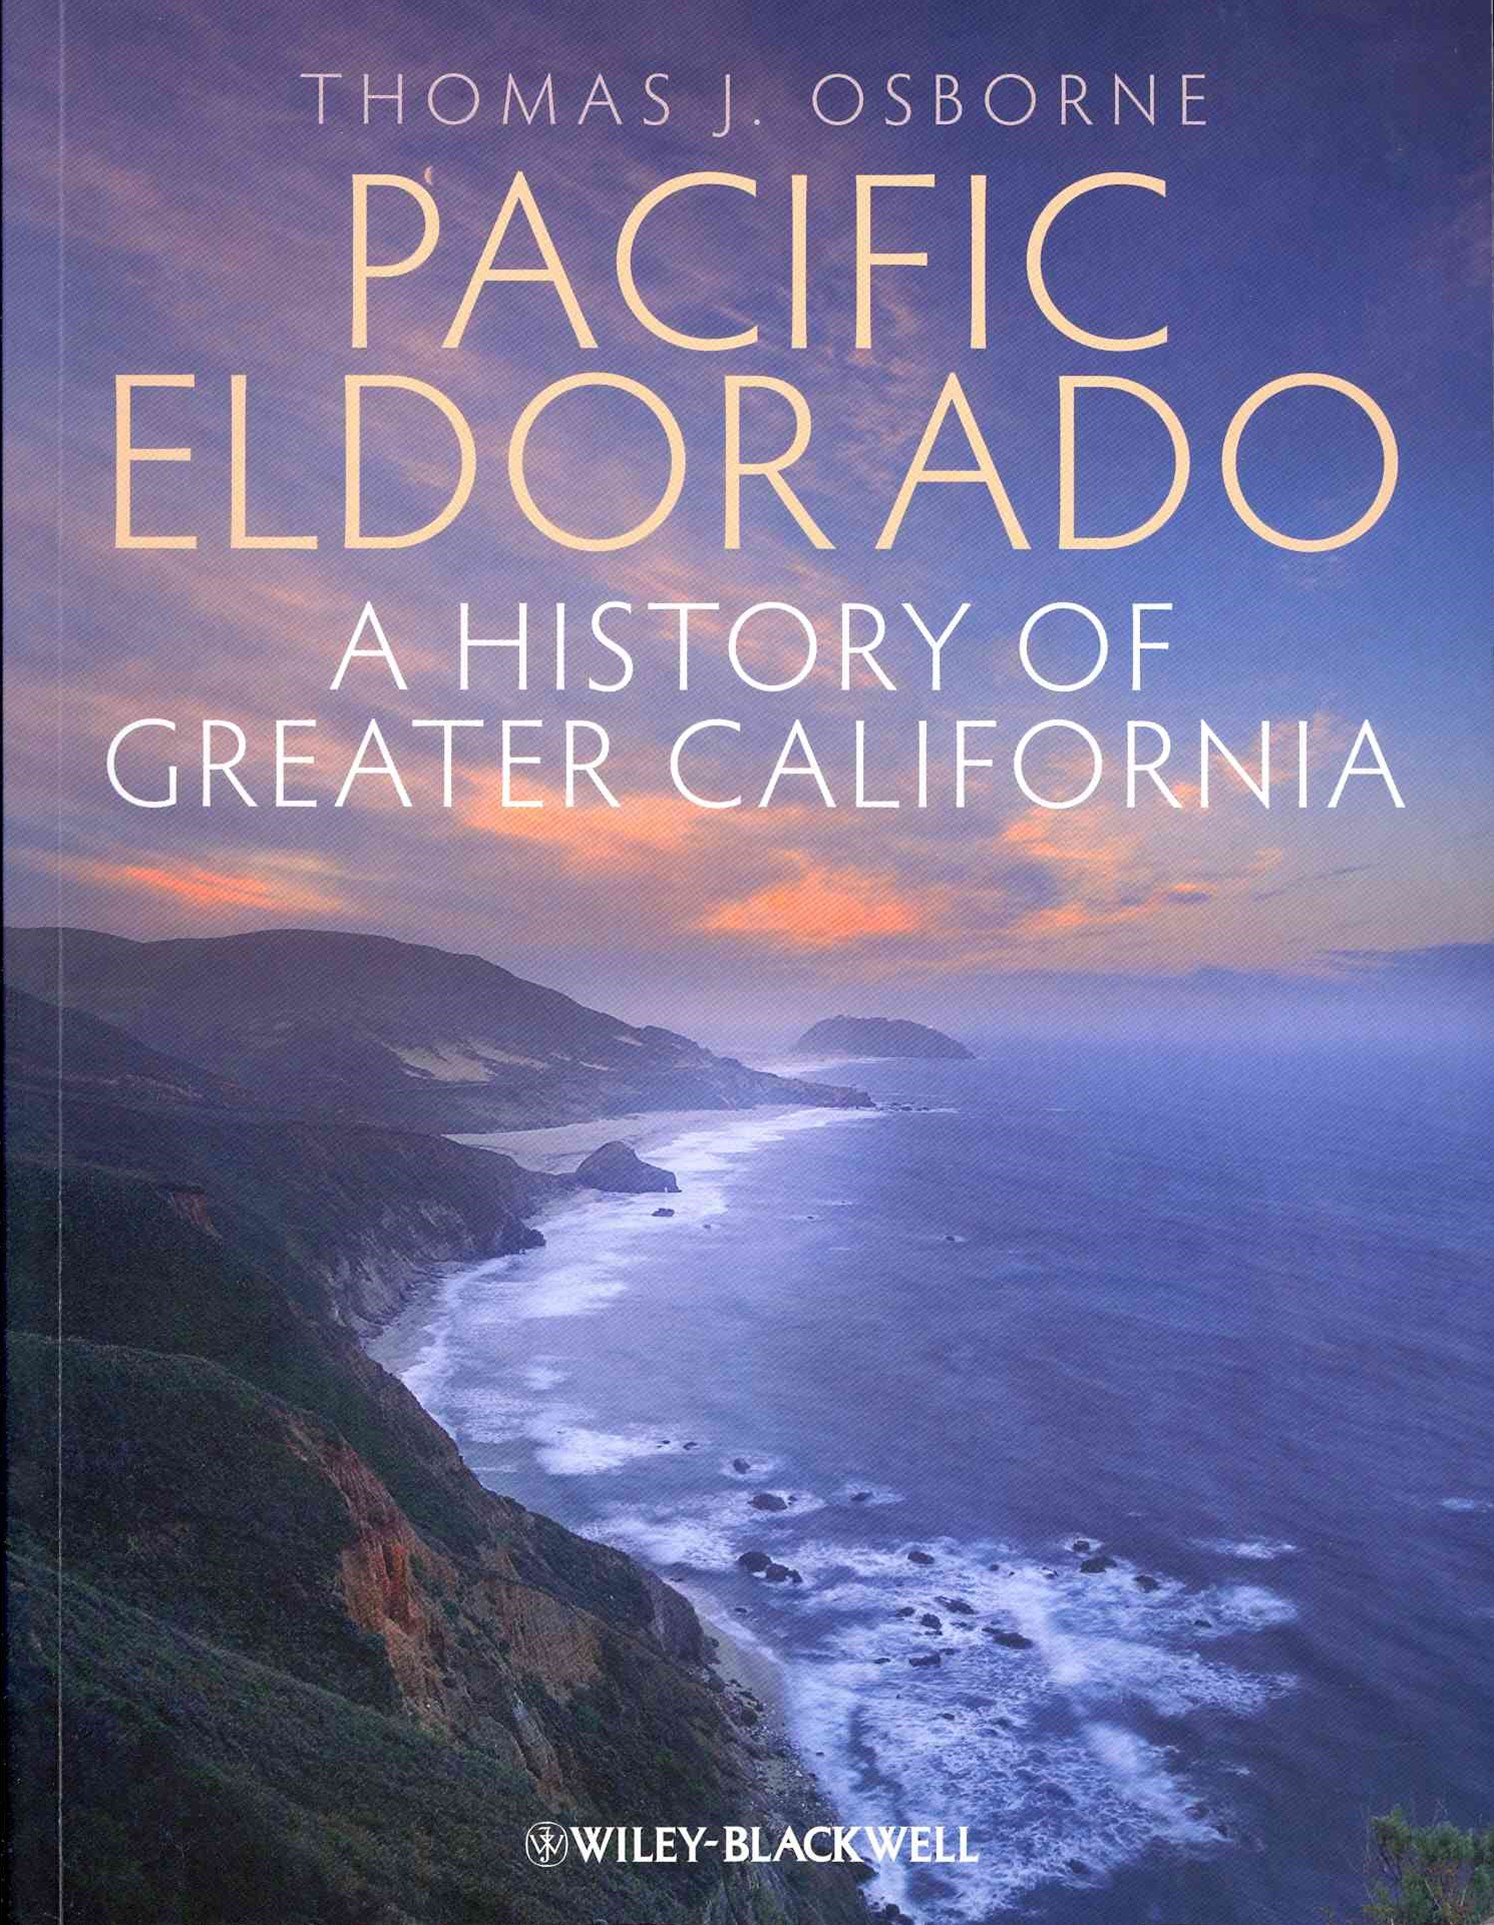 Pacific Eldorado - a History of Greater California